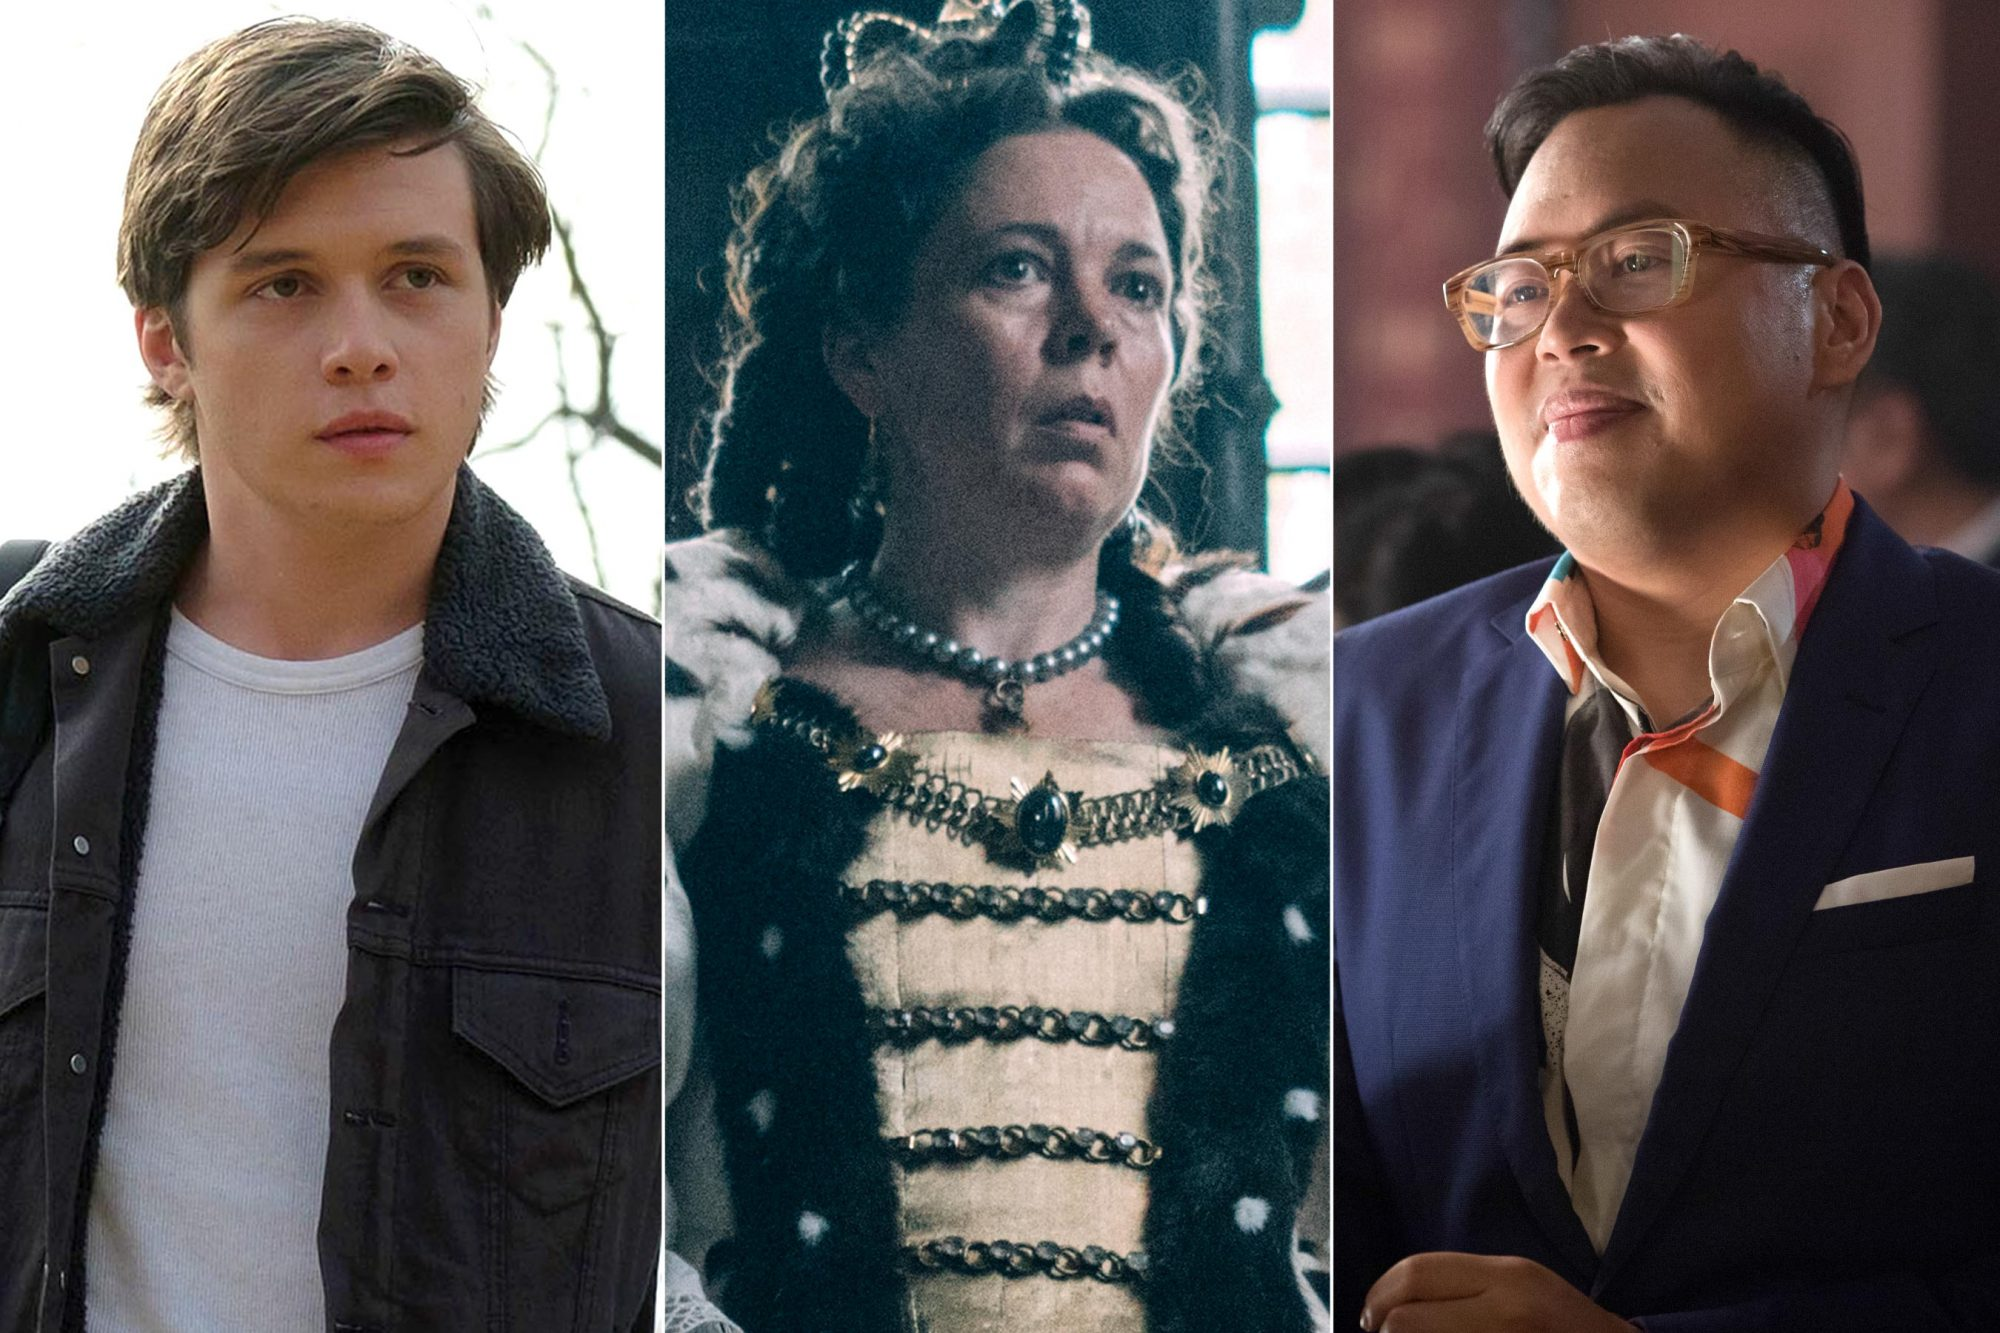 "Nick Robinson stars as Simon in Twentieth Century Fox's LOVE, SIMON. Photo Credit: Ben Rothstein. Olivia Colman in the film THE FAVOURITE. Photo by Atsushi Nishijima. © 2018 Twentieth Century Fox Film Corporation All Rights Reserved CR: Atsushi Nishijima/Fox Searchlight CRAZY RICH ASIANS NICO SANTOS as Oliver in Warner Bros. Pictures' and SK Global Entertainment's and Starlight Culture's contemporary romantic comedy ""CRAZY RICH ASIANS,"" a Warner Bros. Pictures release. Photo Credit: Sanja Bucko/Warner Bros."